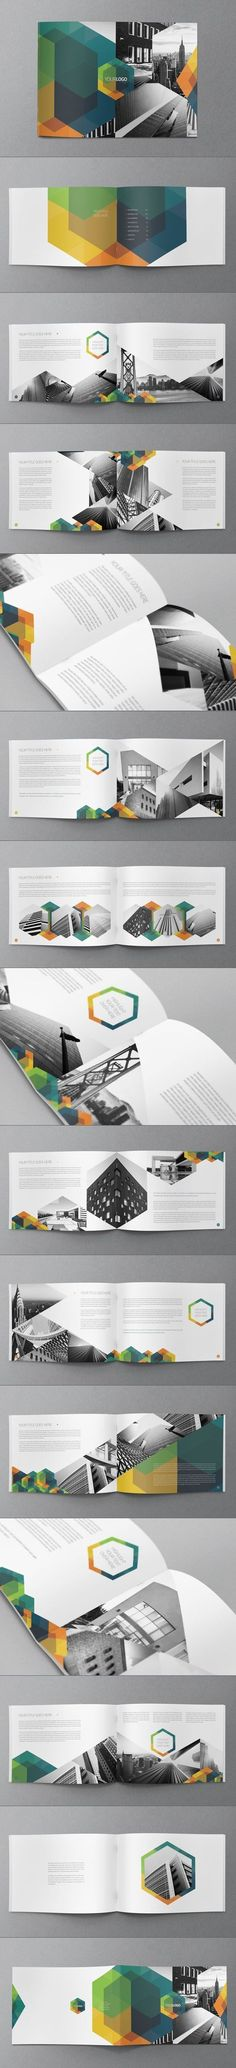 Hexo Brochure Design by Abra Design | Graphic Design: